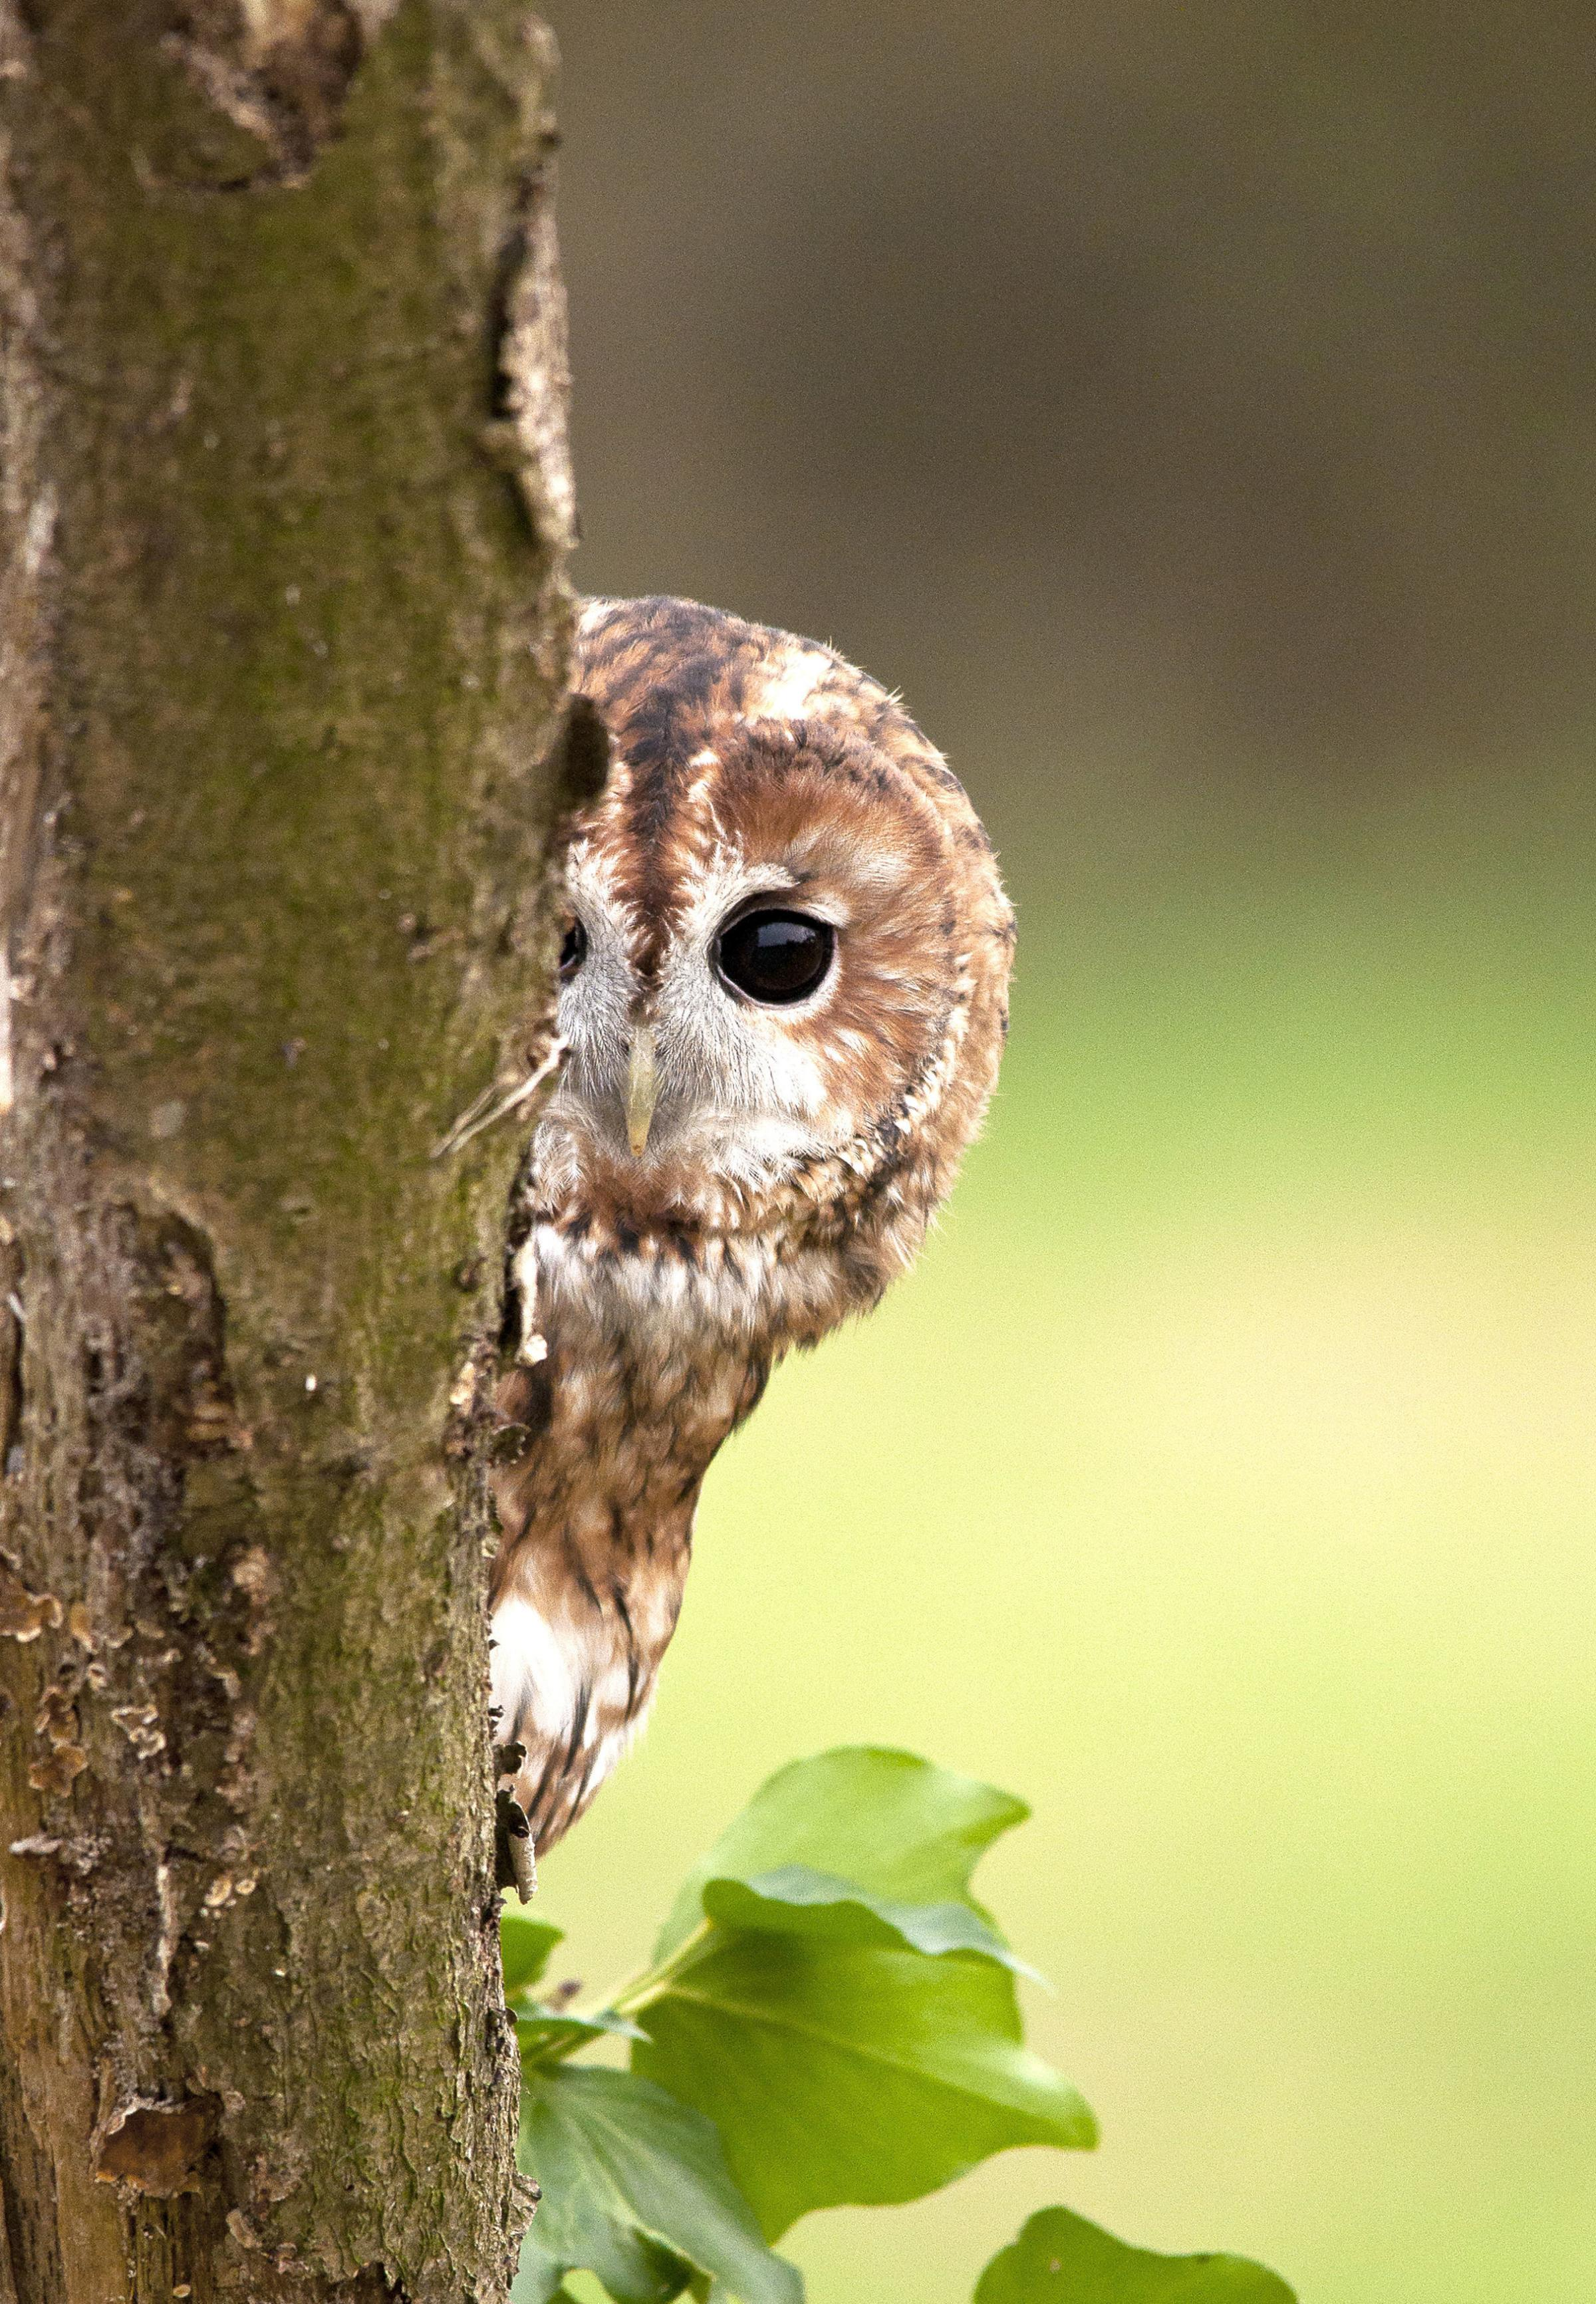 Undated handout photo issued by the British Trust for Ornithology (BTO) of a Tawny Owl, as the public are being asked to listen out for the bird's twit-twoo amid concerns over declines. PRESS ASSOCIATION Photo. Issue date: Friday September 28, 2018. T